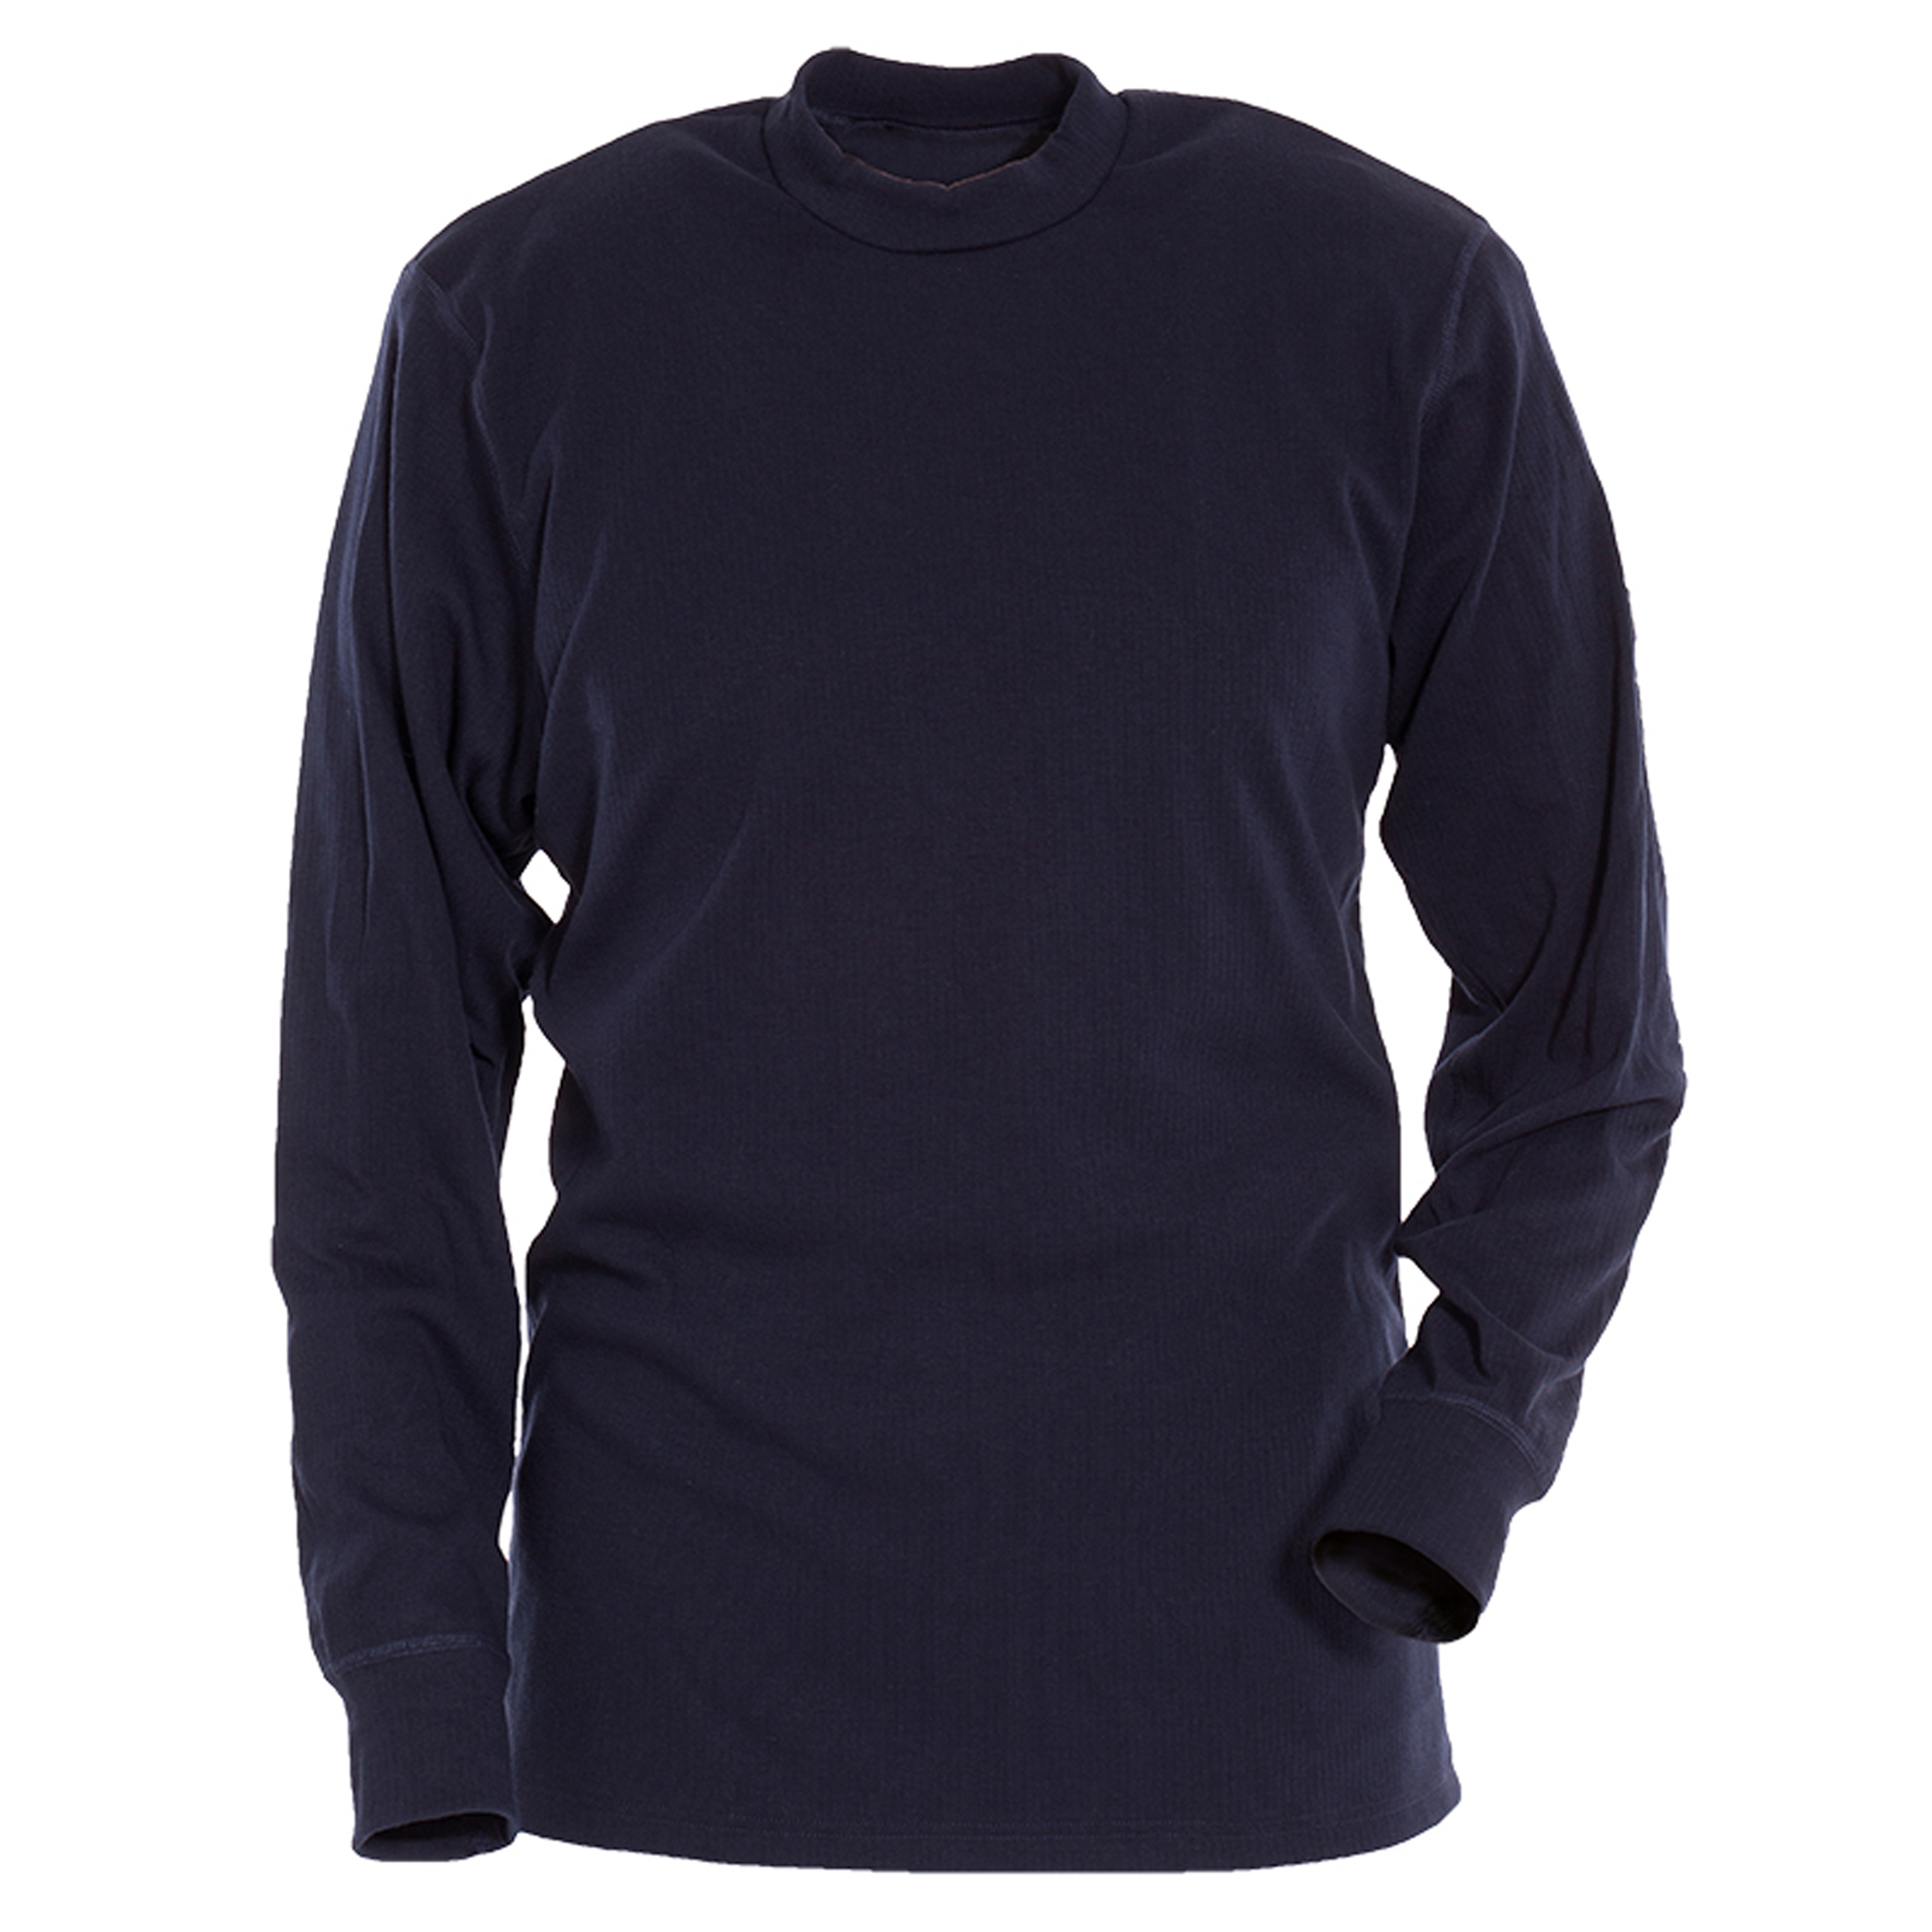 TRANEMO 5940 92 ARC RATED T-SHIRT LONG SLEEVES - 7.0 CAL/CM²